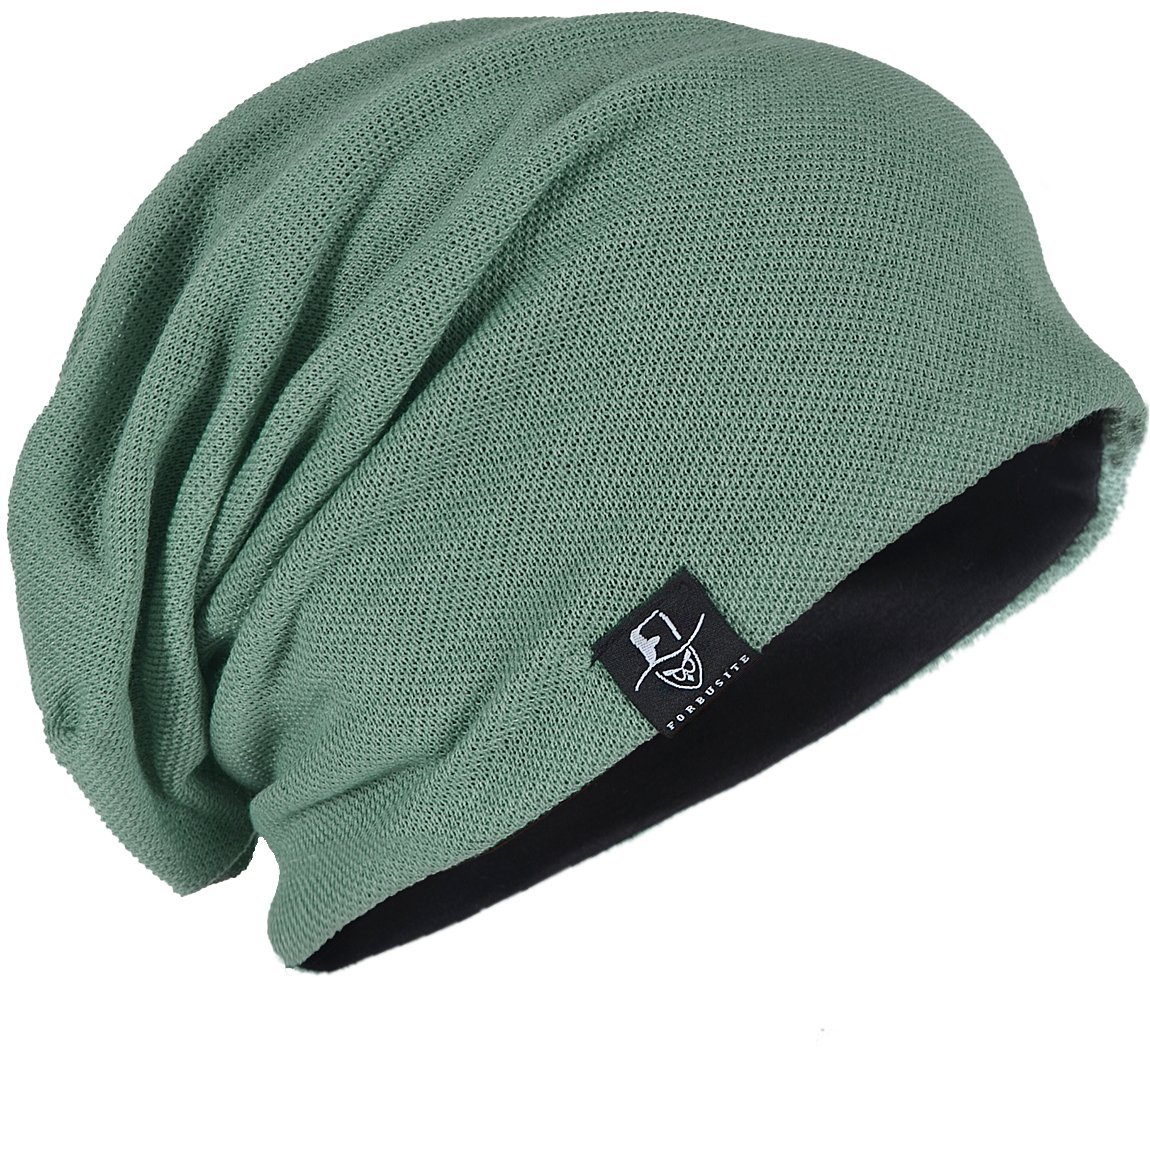 FORBUSITE Men Women Basic Slouch Thin Beanie Skull Cap for Summer B301 B081-B301-BL